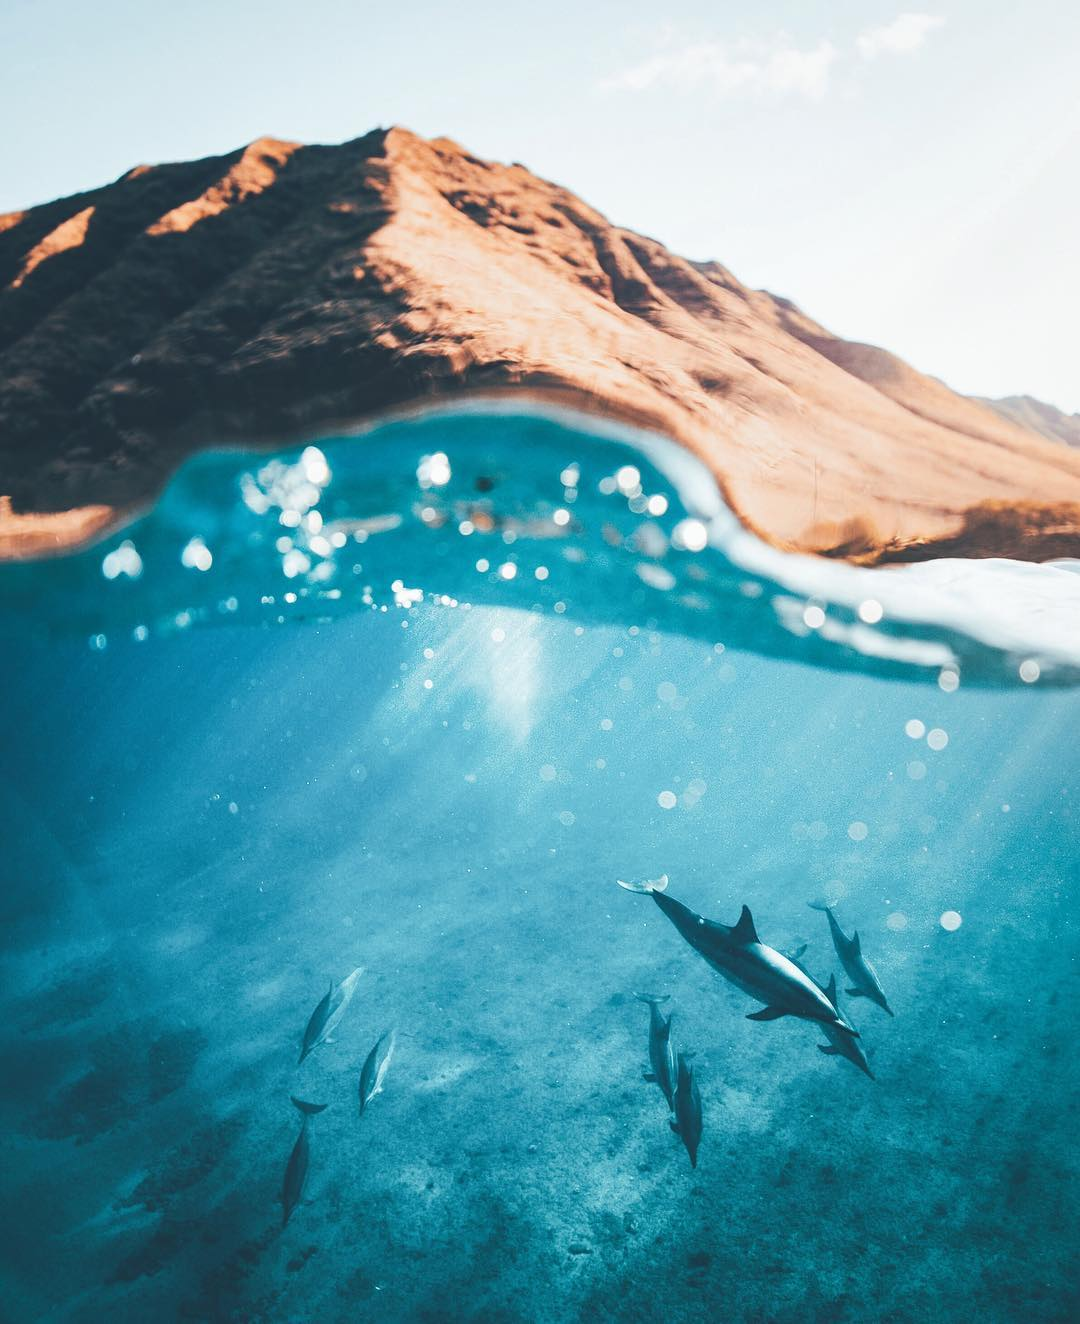 Swim with dolphins (#17 on 26 best things to do on Oahu)